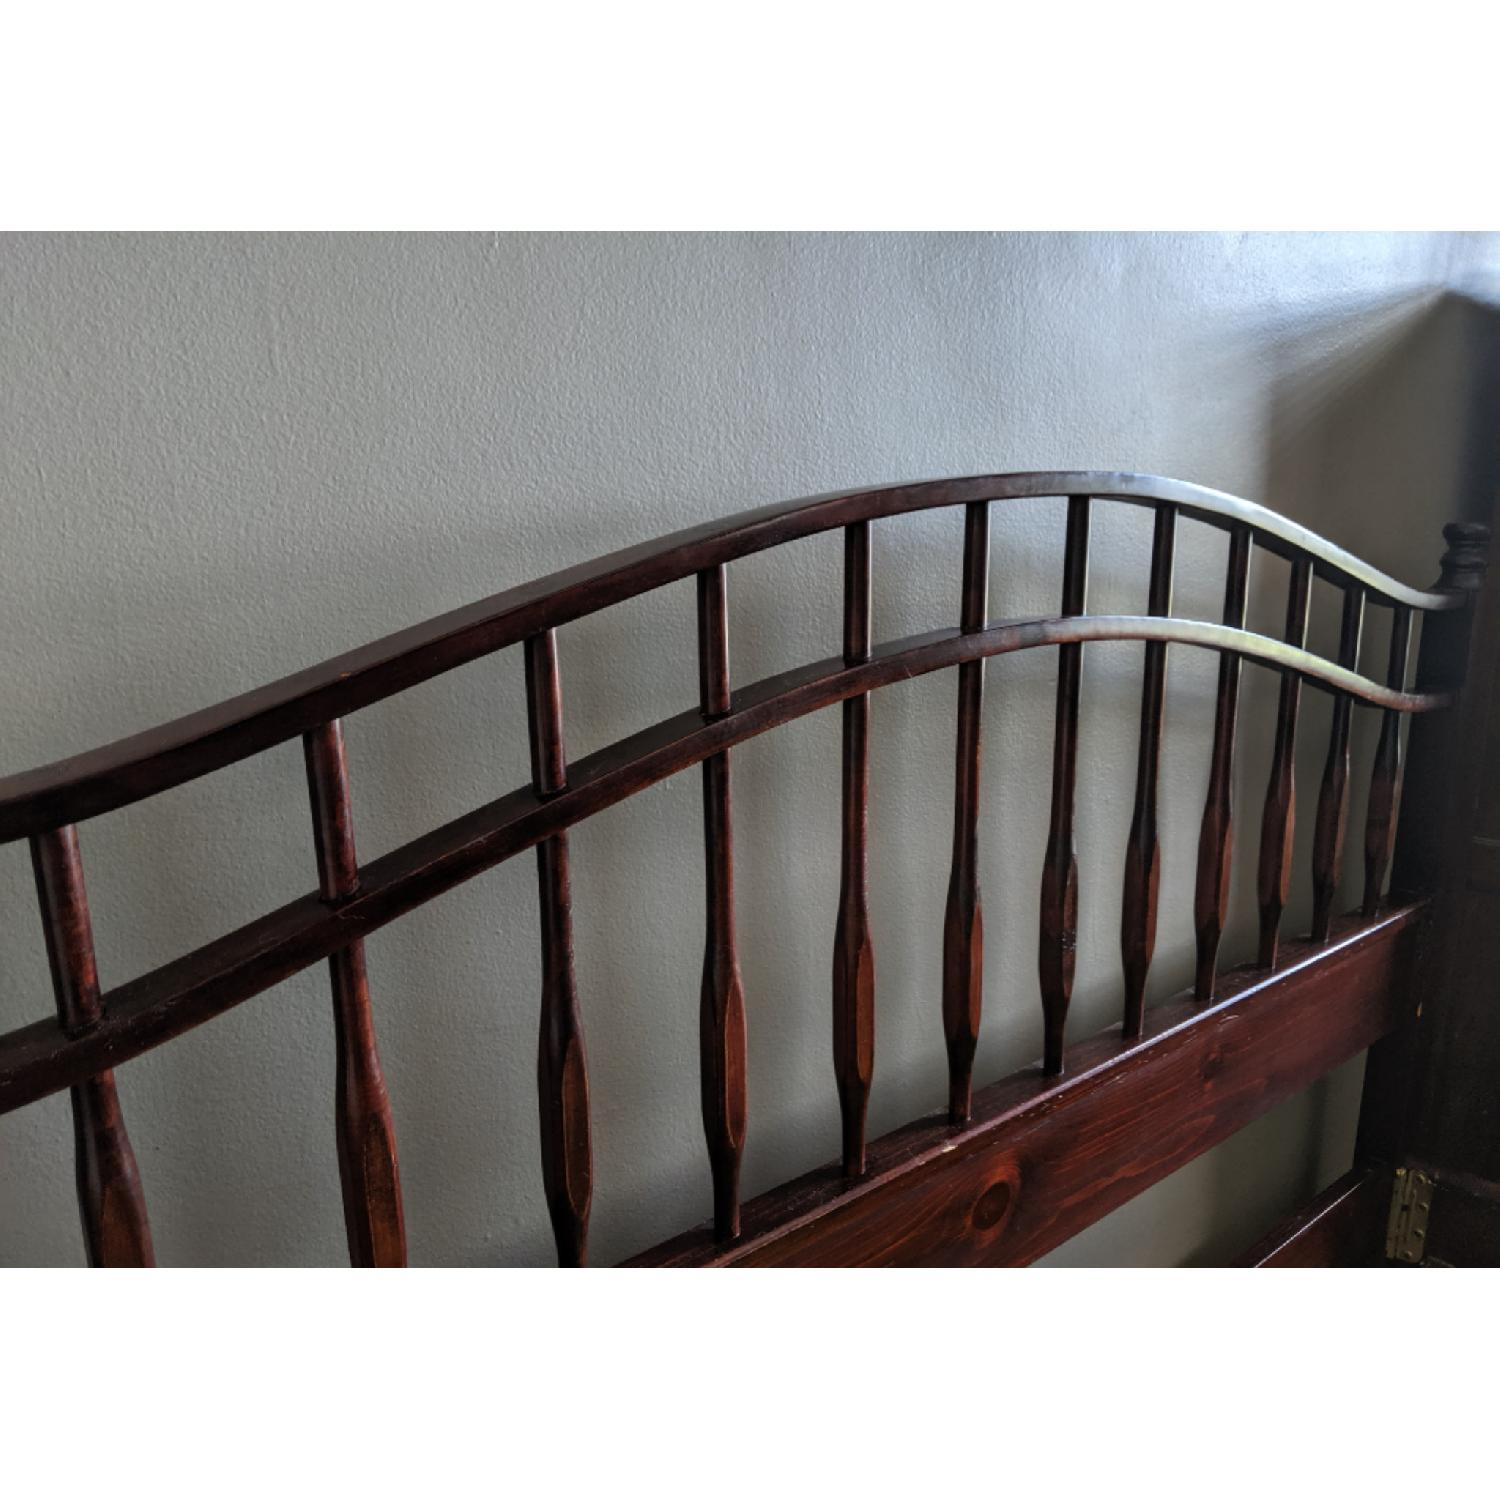 Vintage Wood Queen Size Bed Frame - image-1